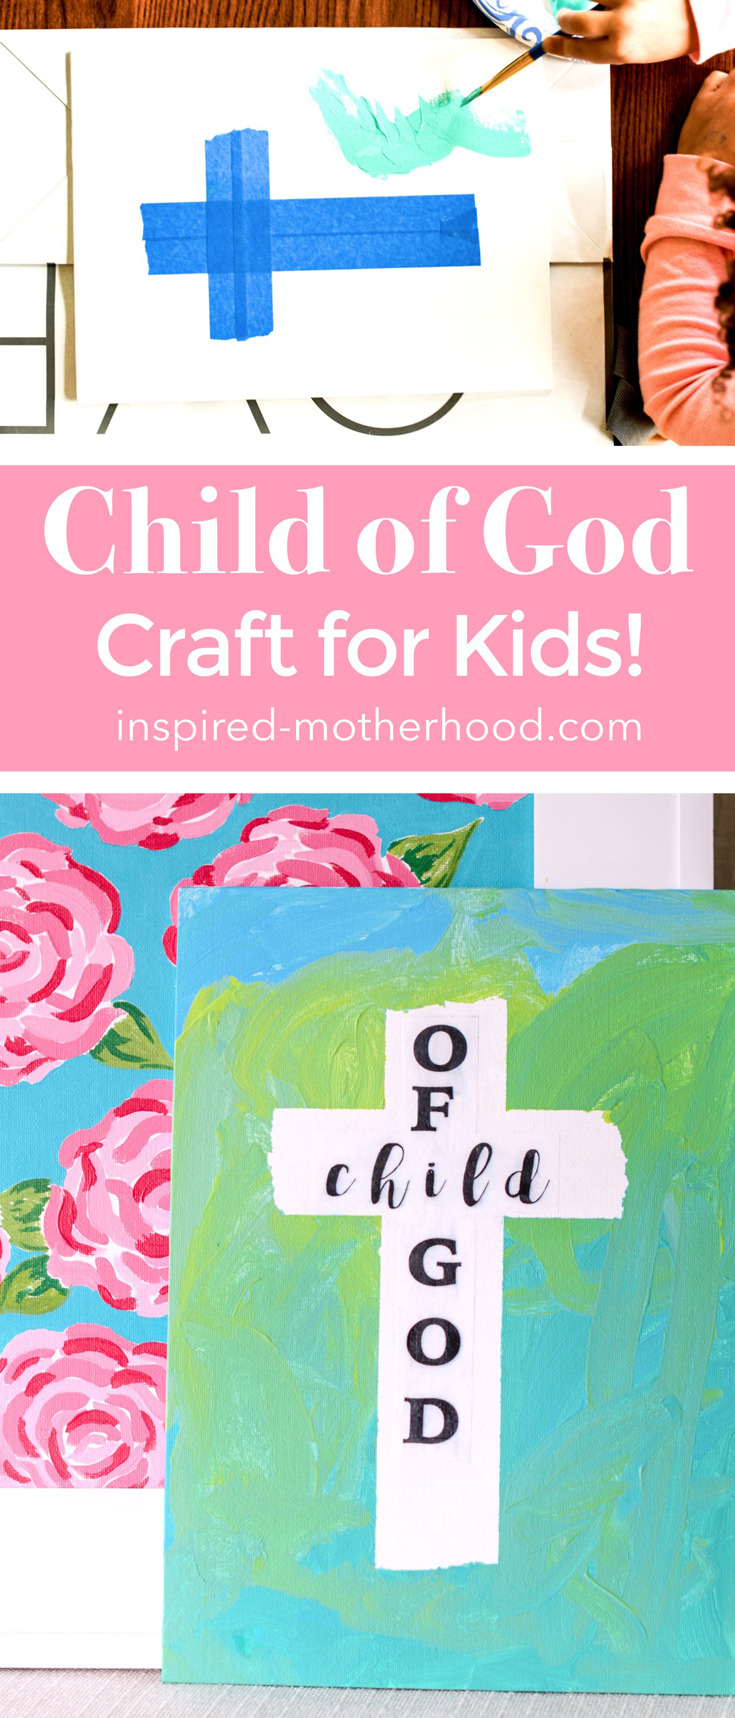 What a beautiful faith based craft your kids to DIY! They will love painting this easy cross craft.